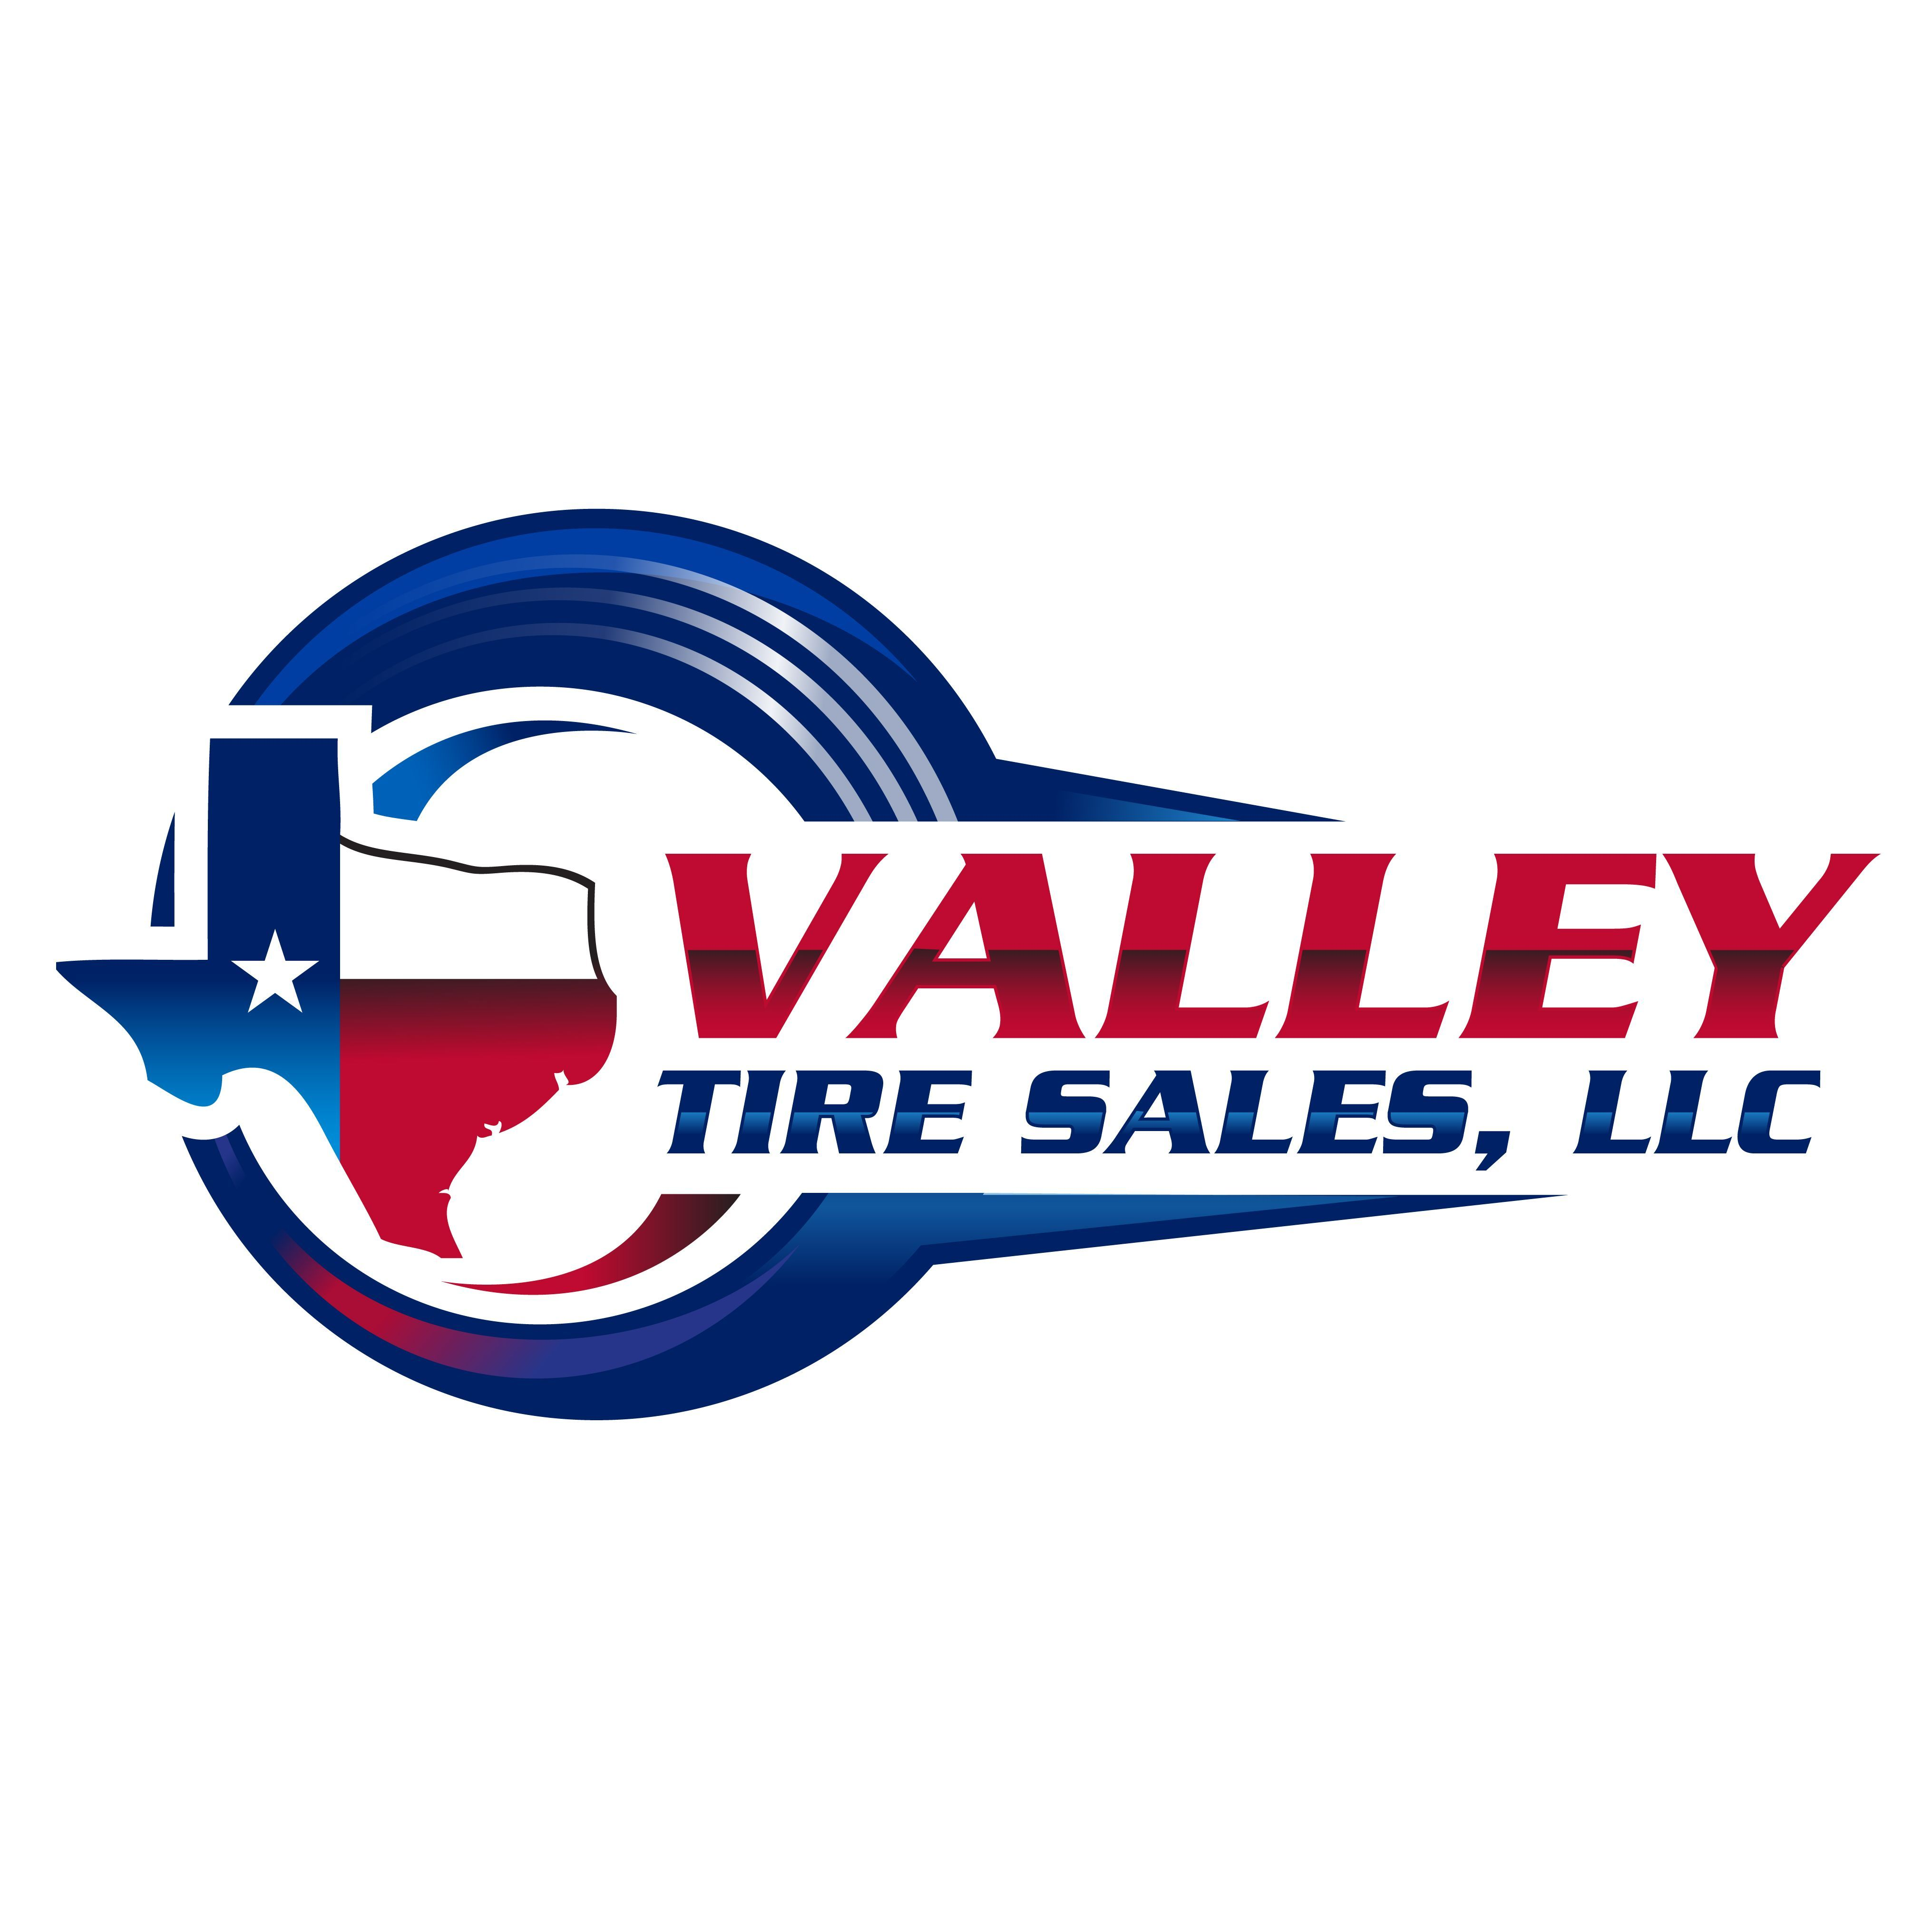 Valley Tire Sales, LLC